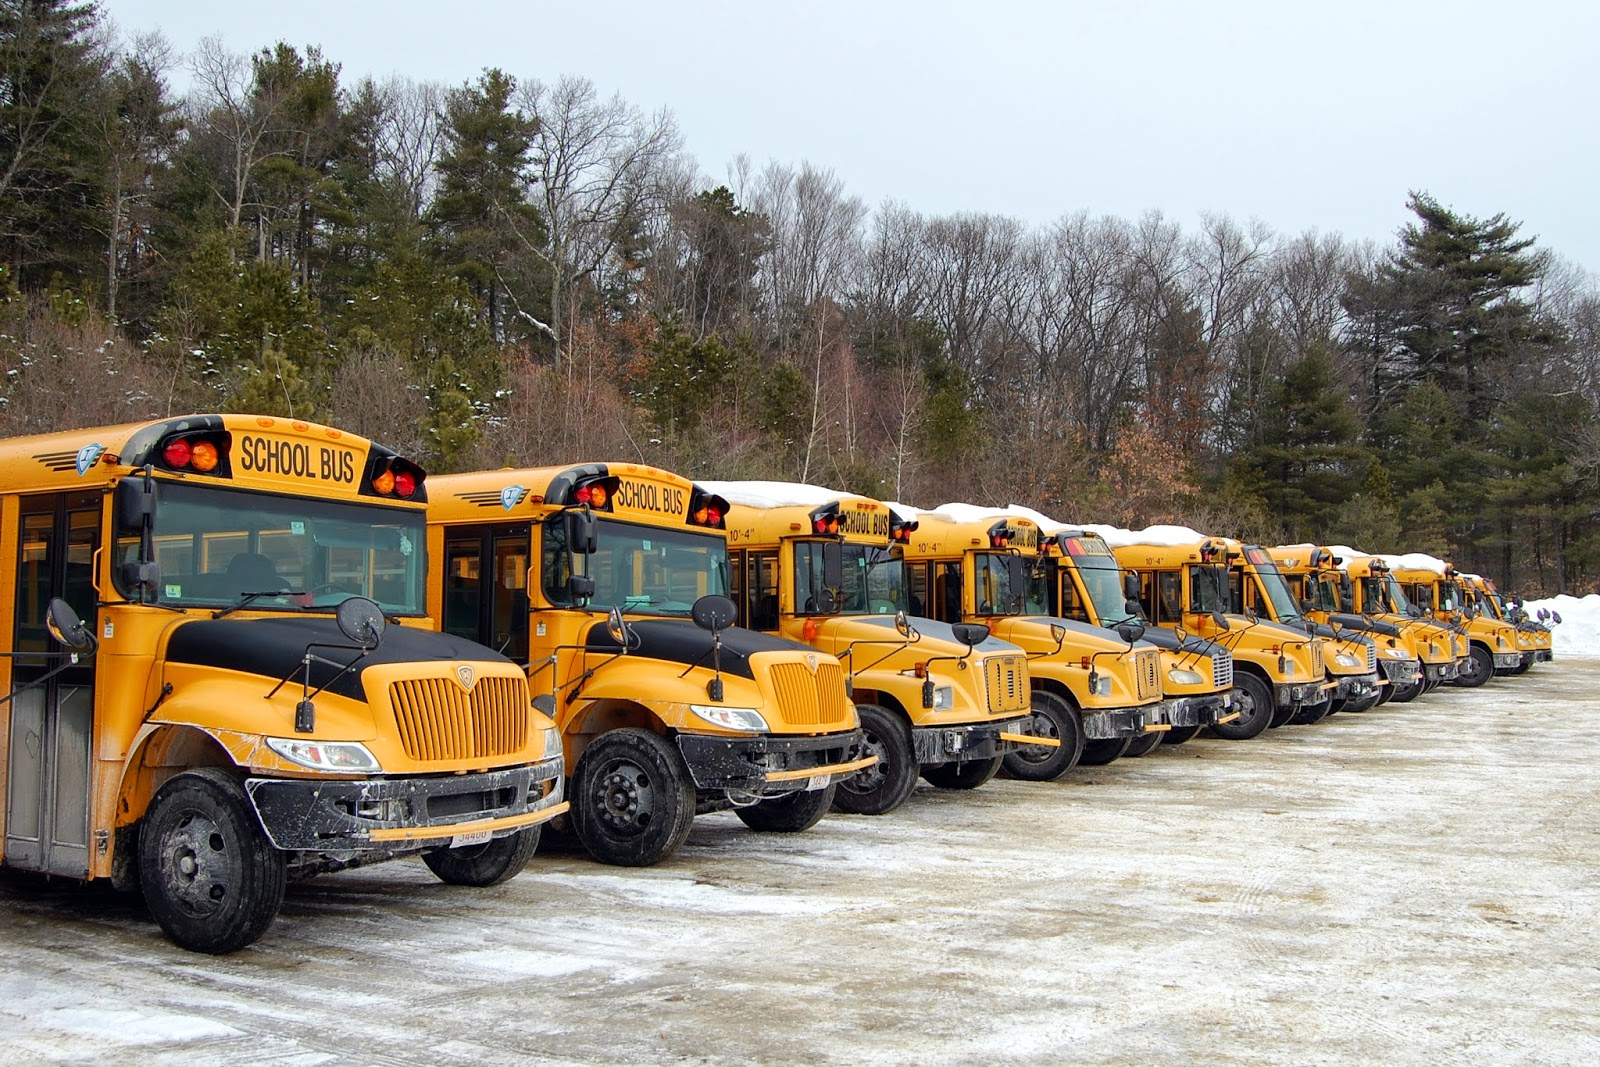 school buses will be rolling this morning with schools re-opening